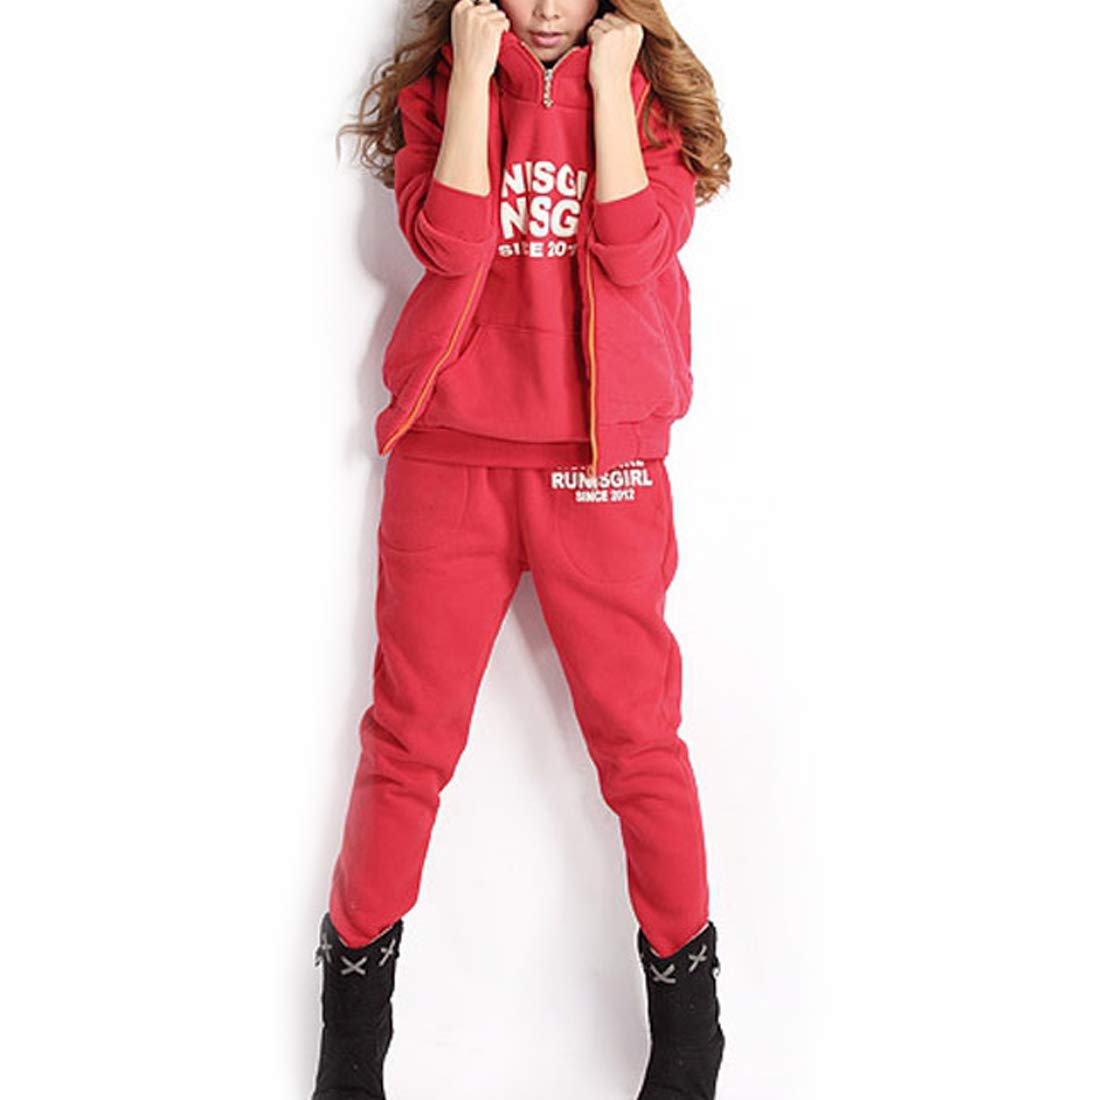 Fulision Women's Hooded Pullover Sportswear Fashion Fall Winter Set Fulision Co. Ltd